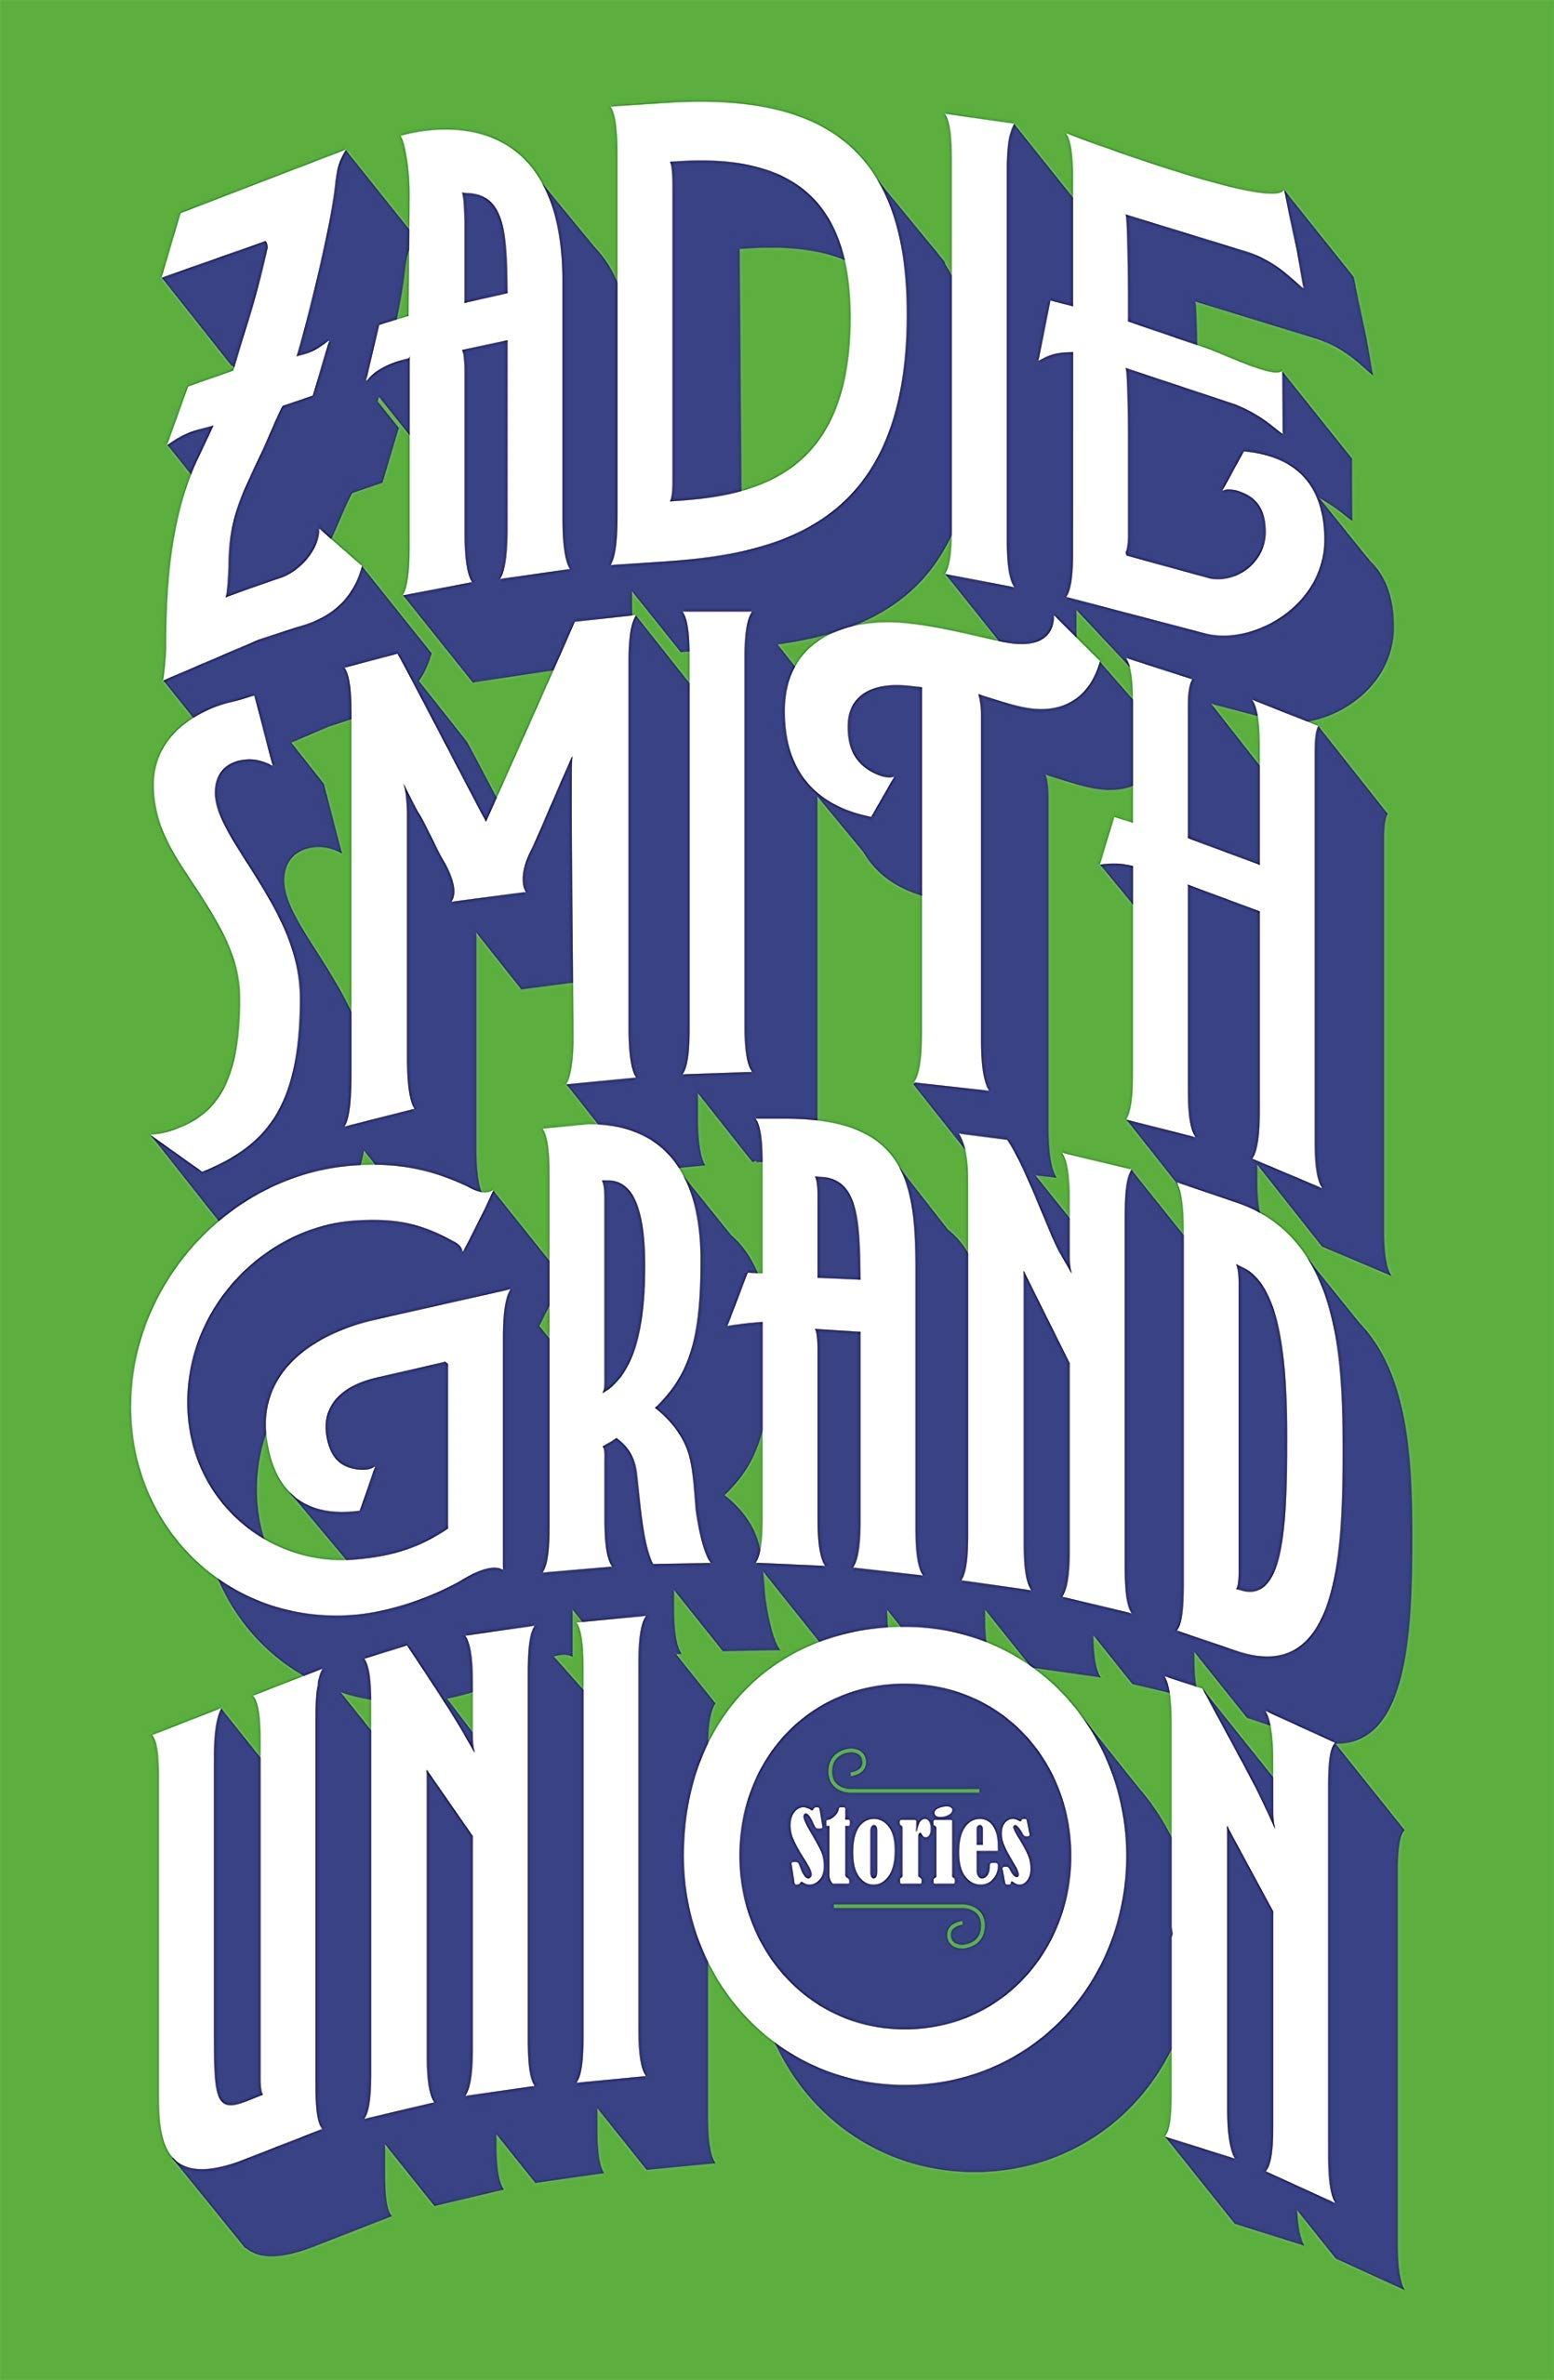 grand-union-stories-zadie-smith